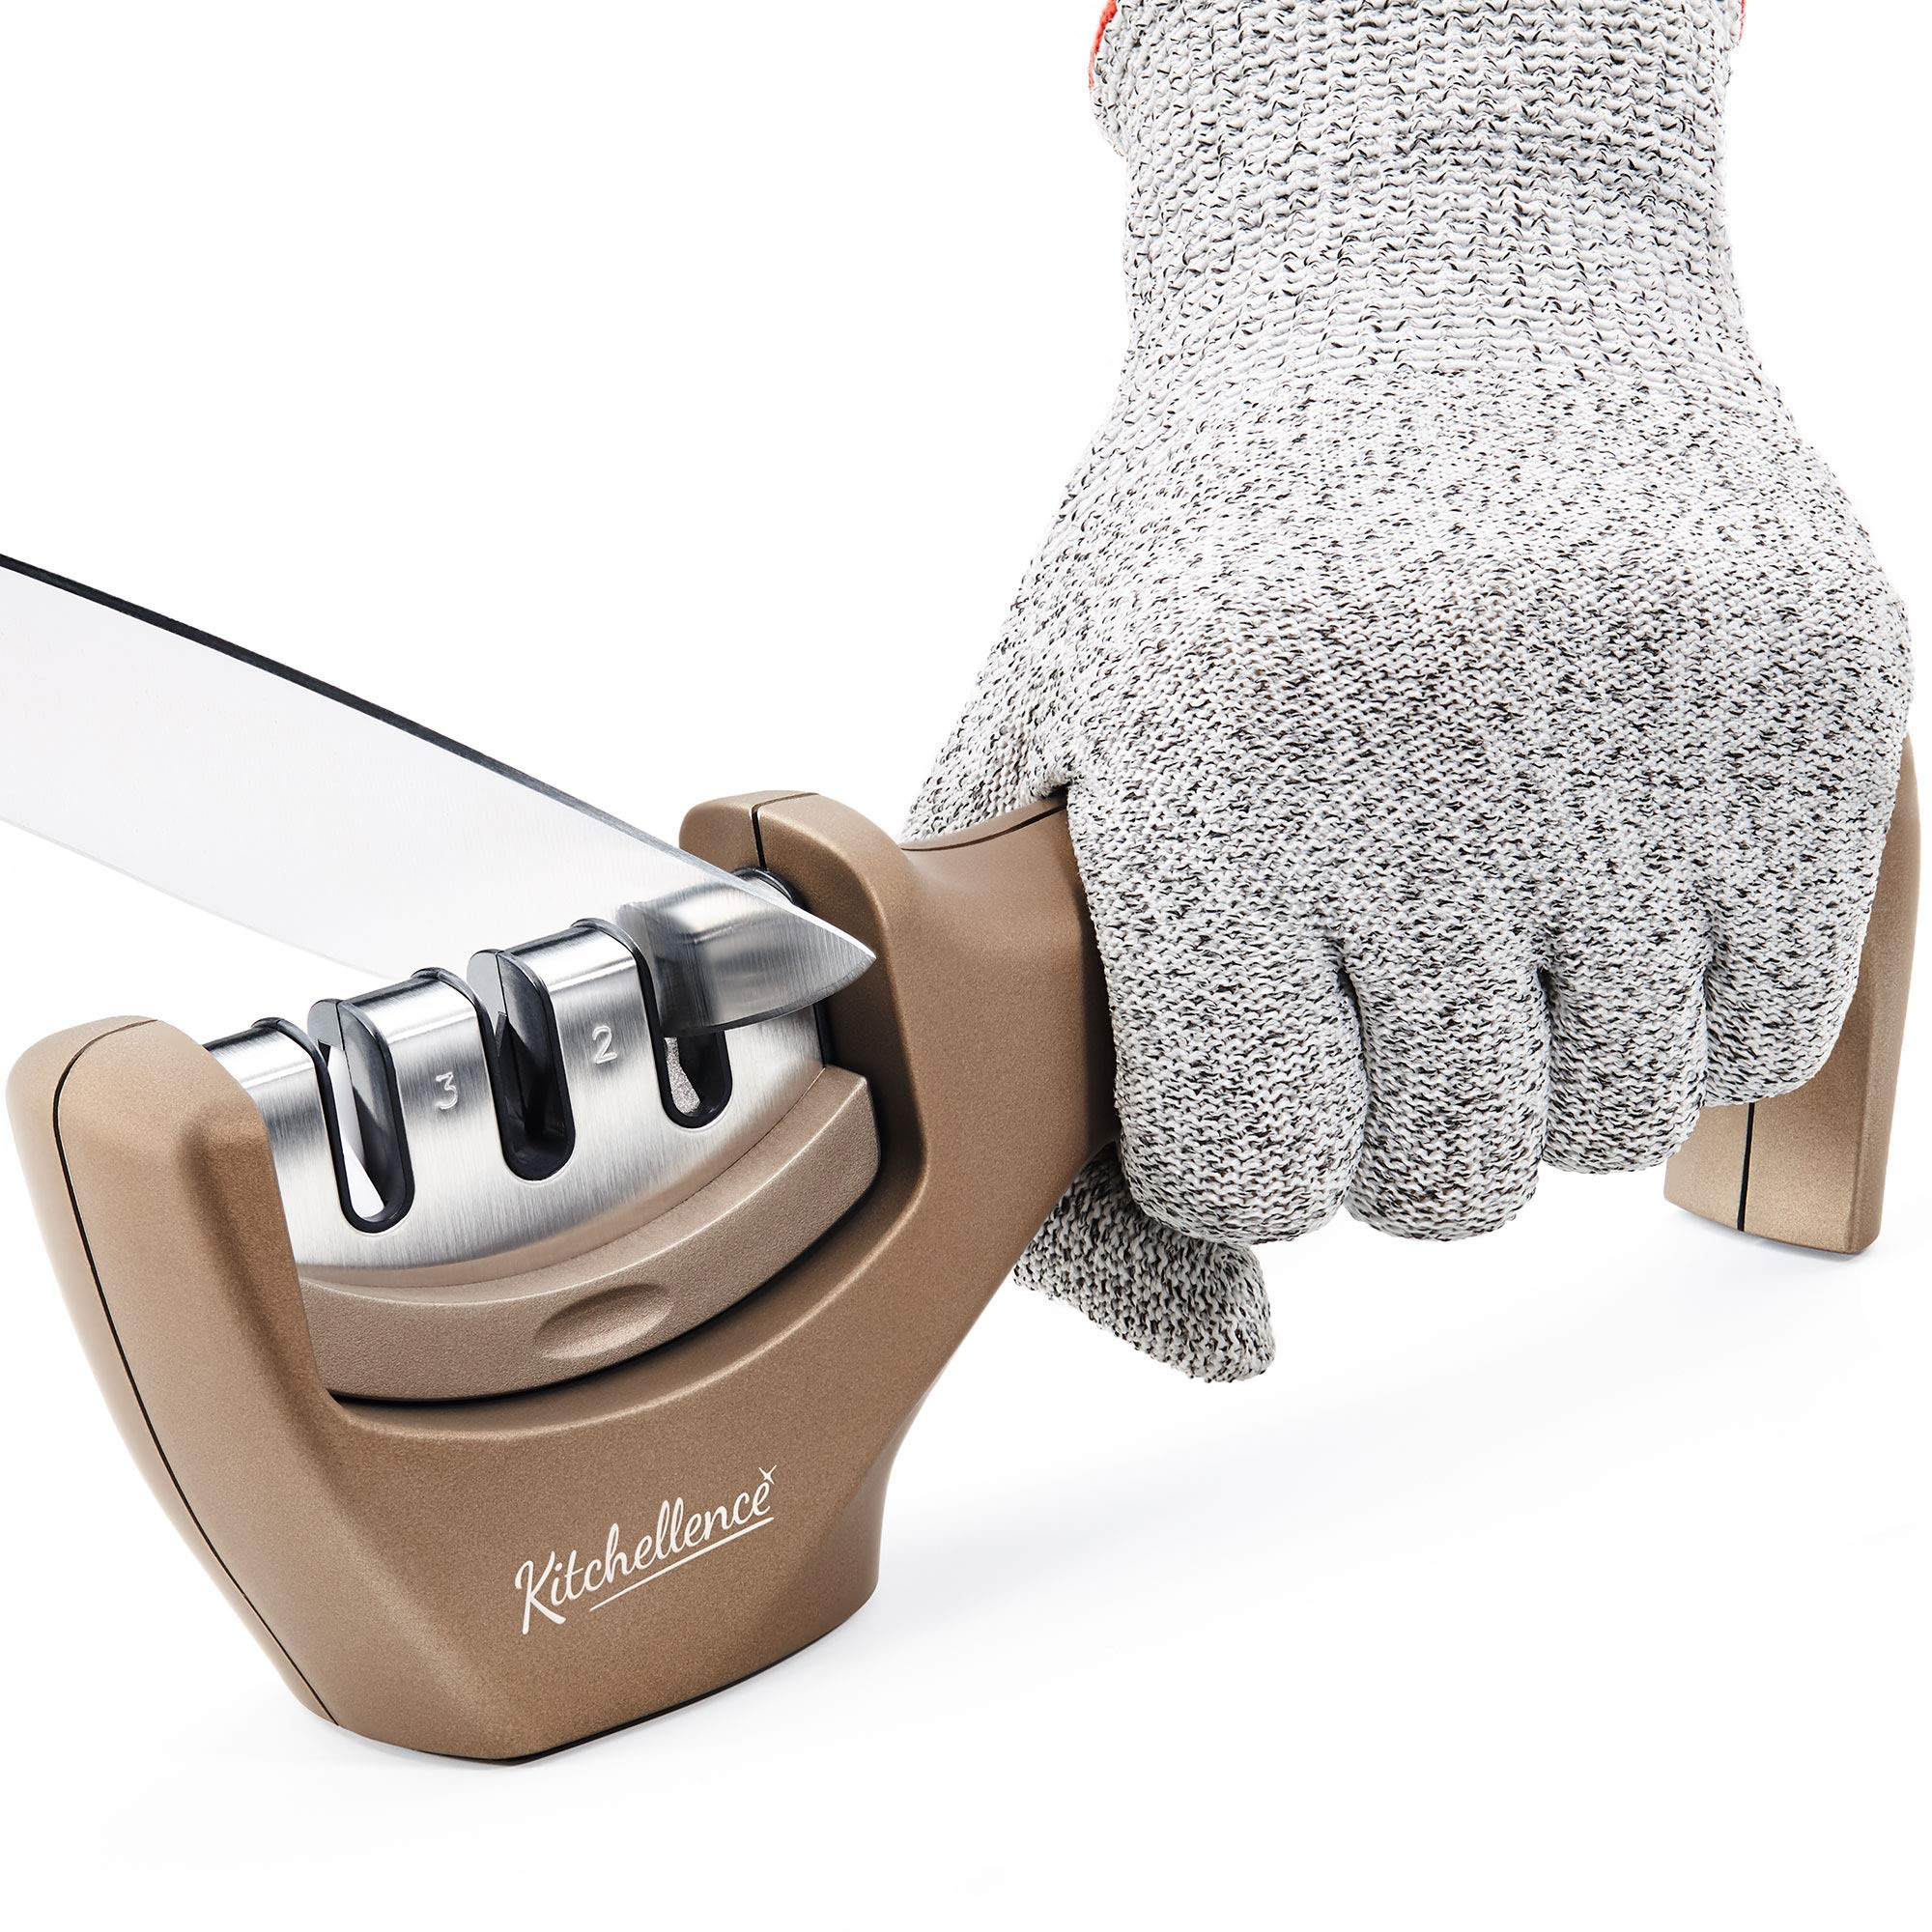 Kitchen Knife Sharpener - 3-Stage Knife Sharpening Tool Helps Repair, Restore and Polish Blades - Cut-Resistant Glove Included (Tan) by Kitchellence